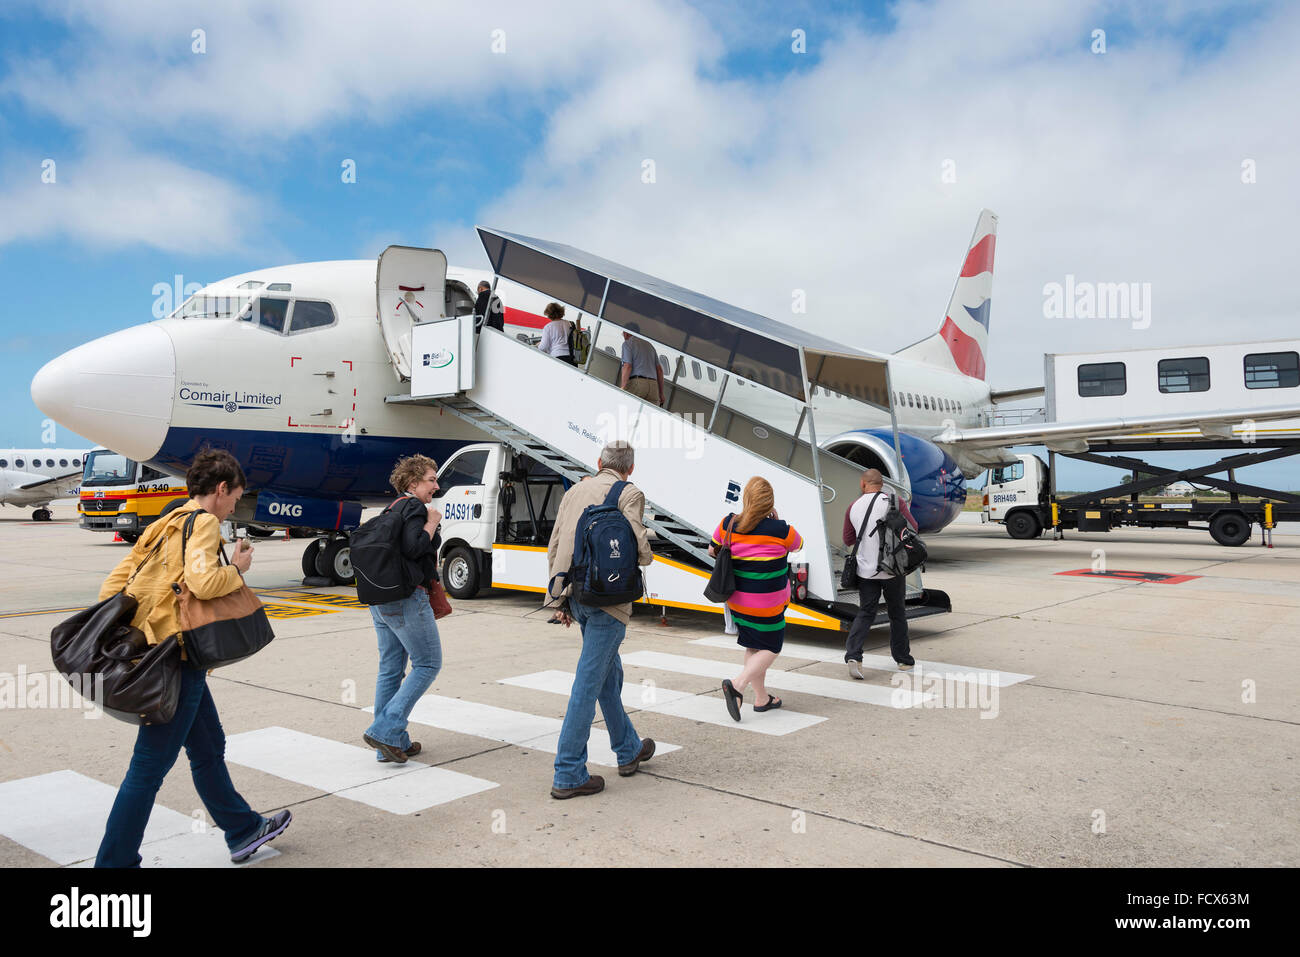 Passengers boarding Comair Boeing 737 aircraft, Port Elizabeth International Airport, Port Elizabeth, Eastern Cape, - Stock Image